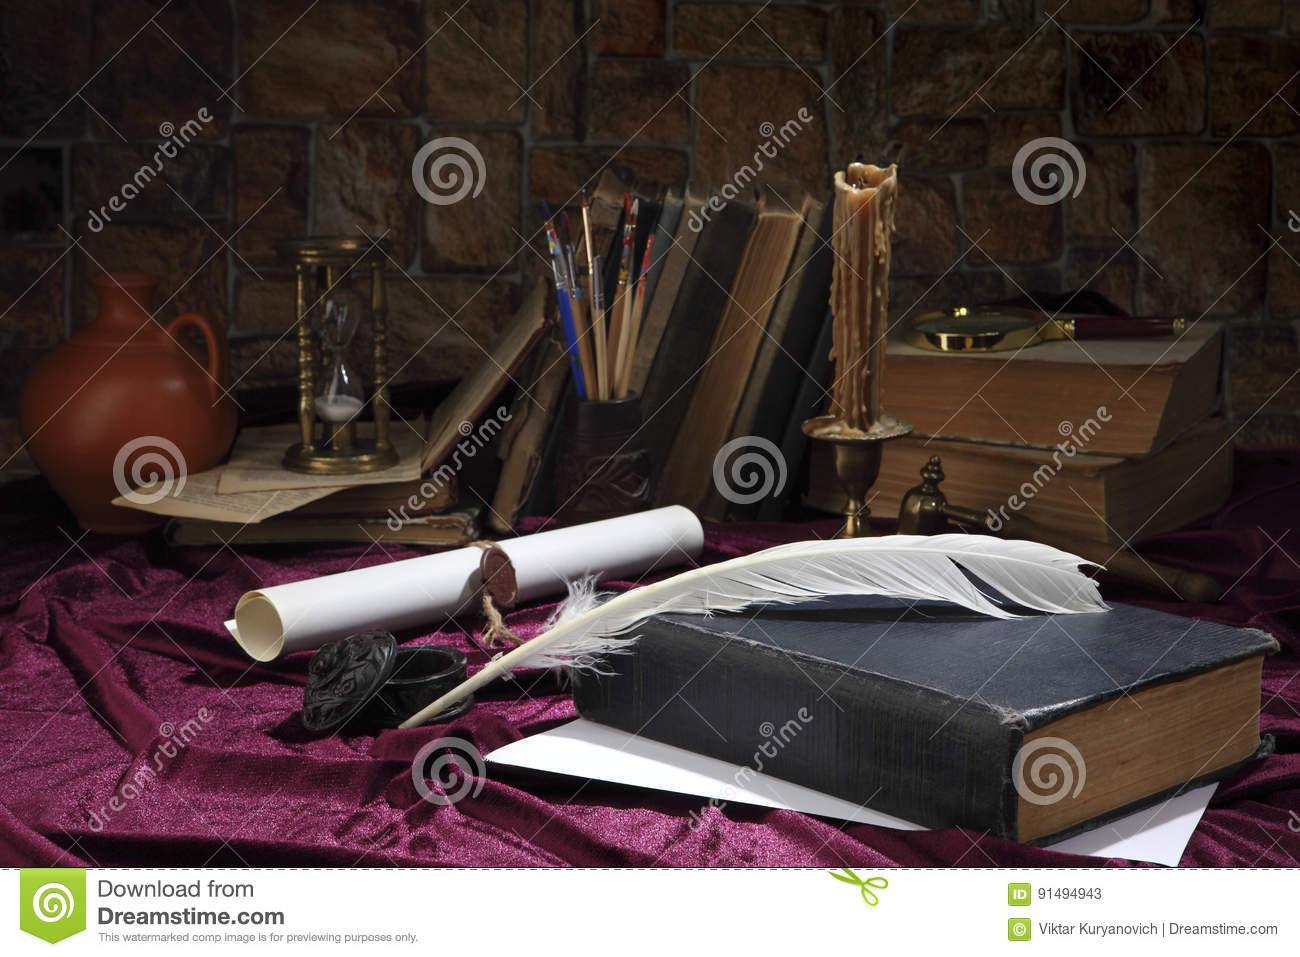 A goose feather, an inkwell, a scroll with a seal, a forged bronze candlestick with a candle, books, a magnifying glass and an hou